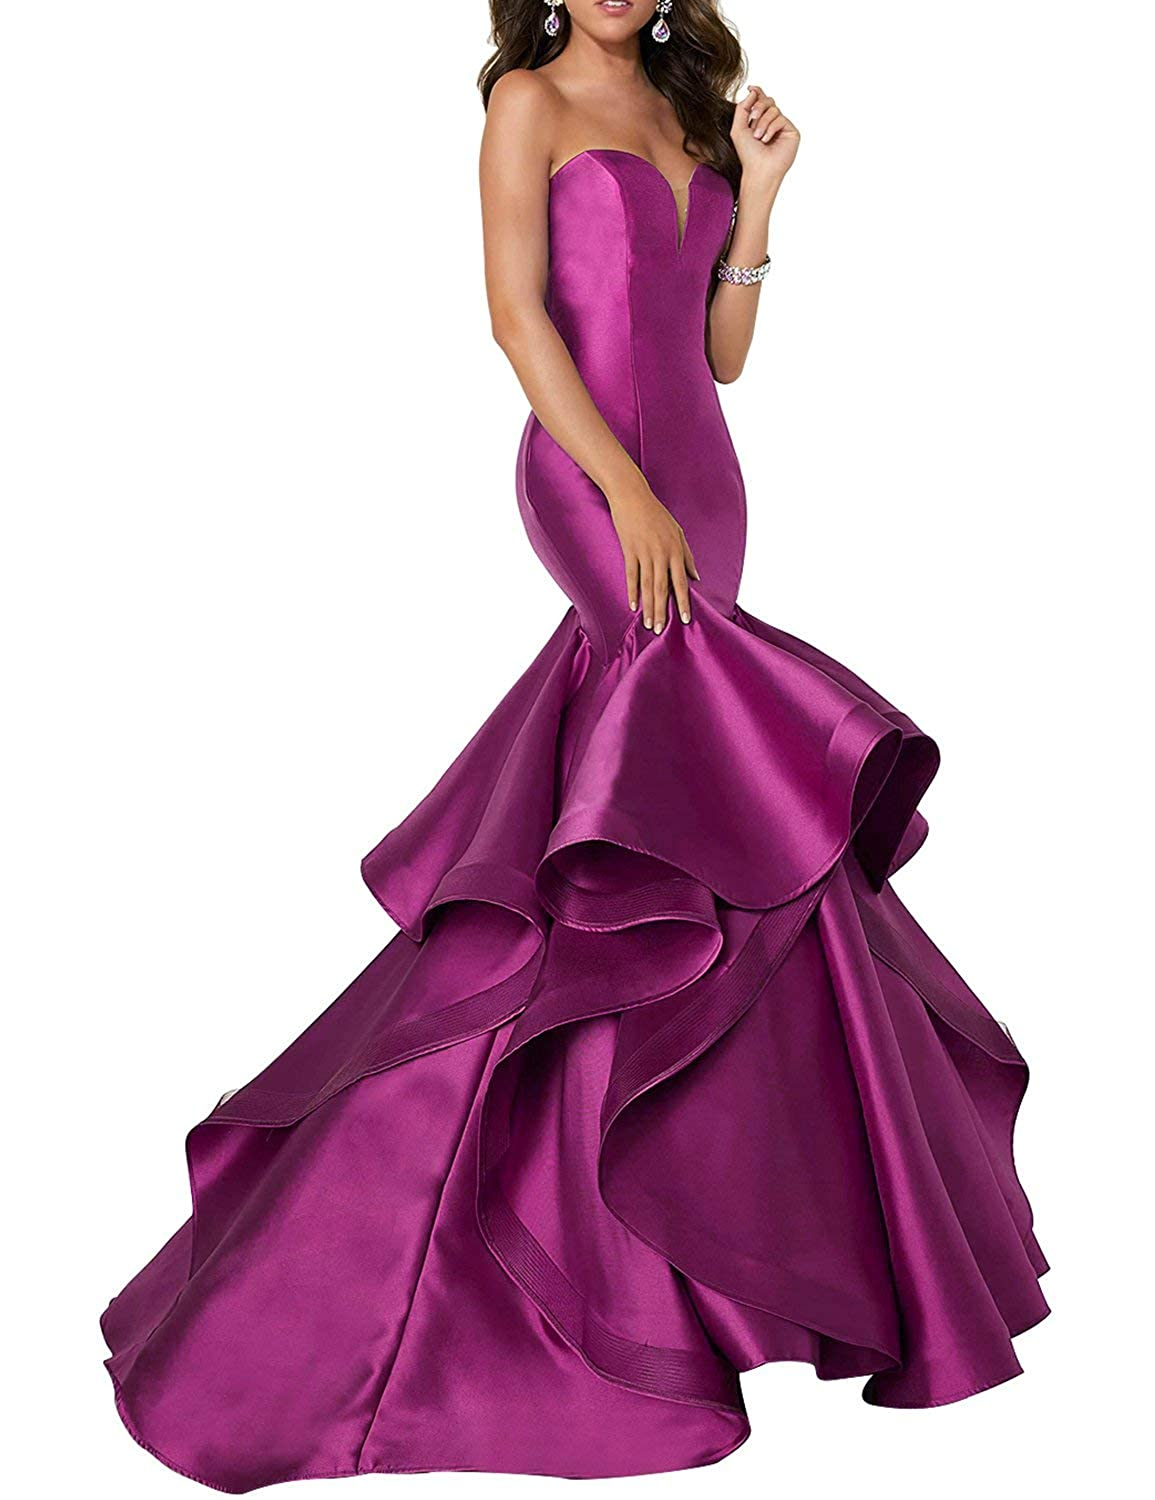 Fuchsia Scarisee Women's Sweetheart Mermaid Prom Evening Party Dresses Tiered FormalSA51